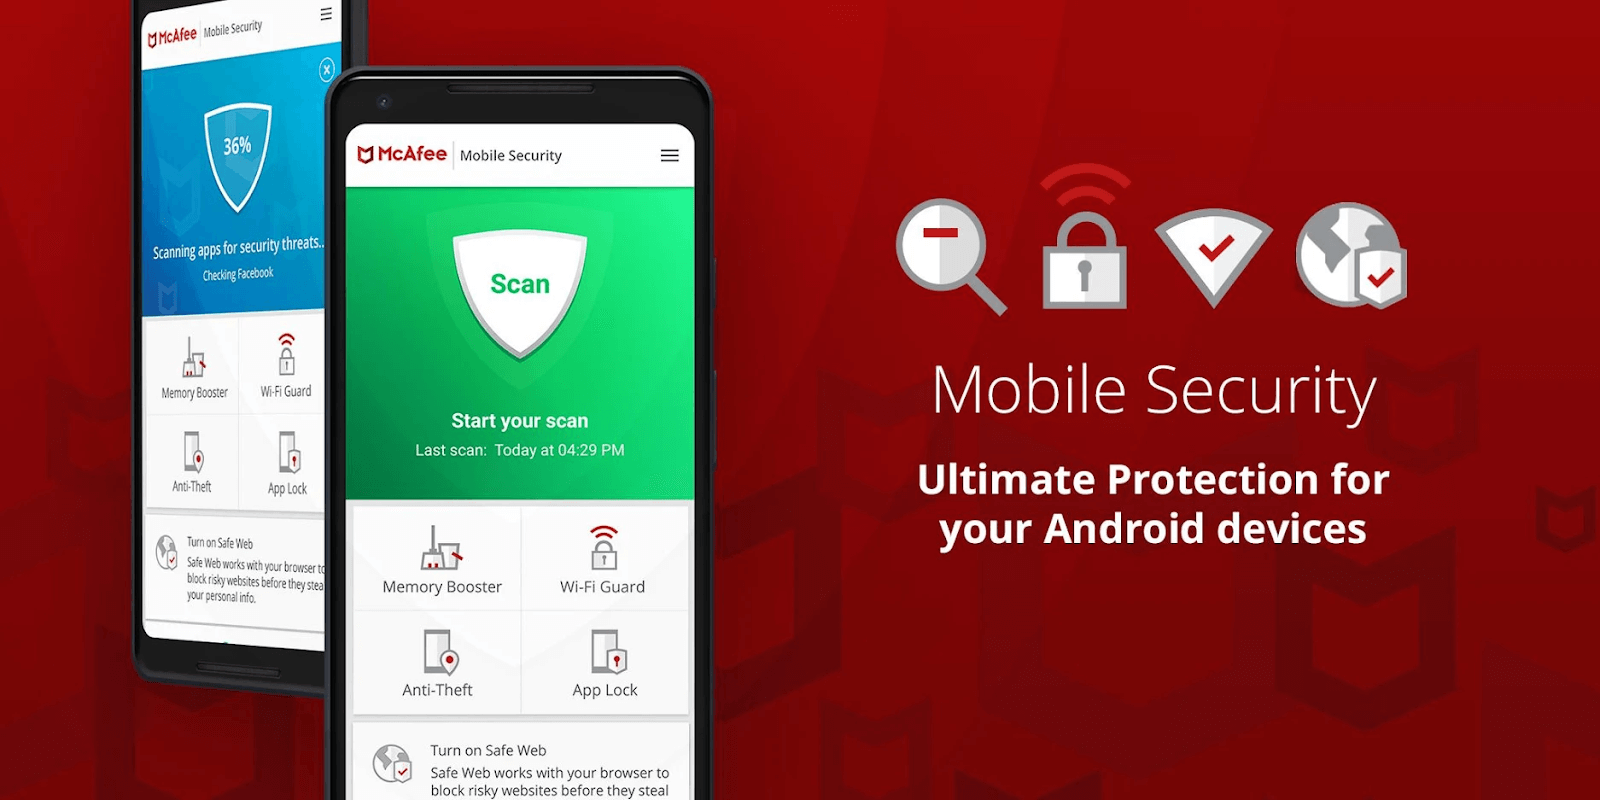 McAfee Mobile Security — Meilleur pour la Protection Antivol